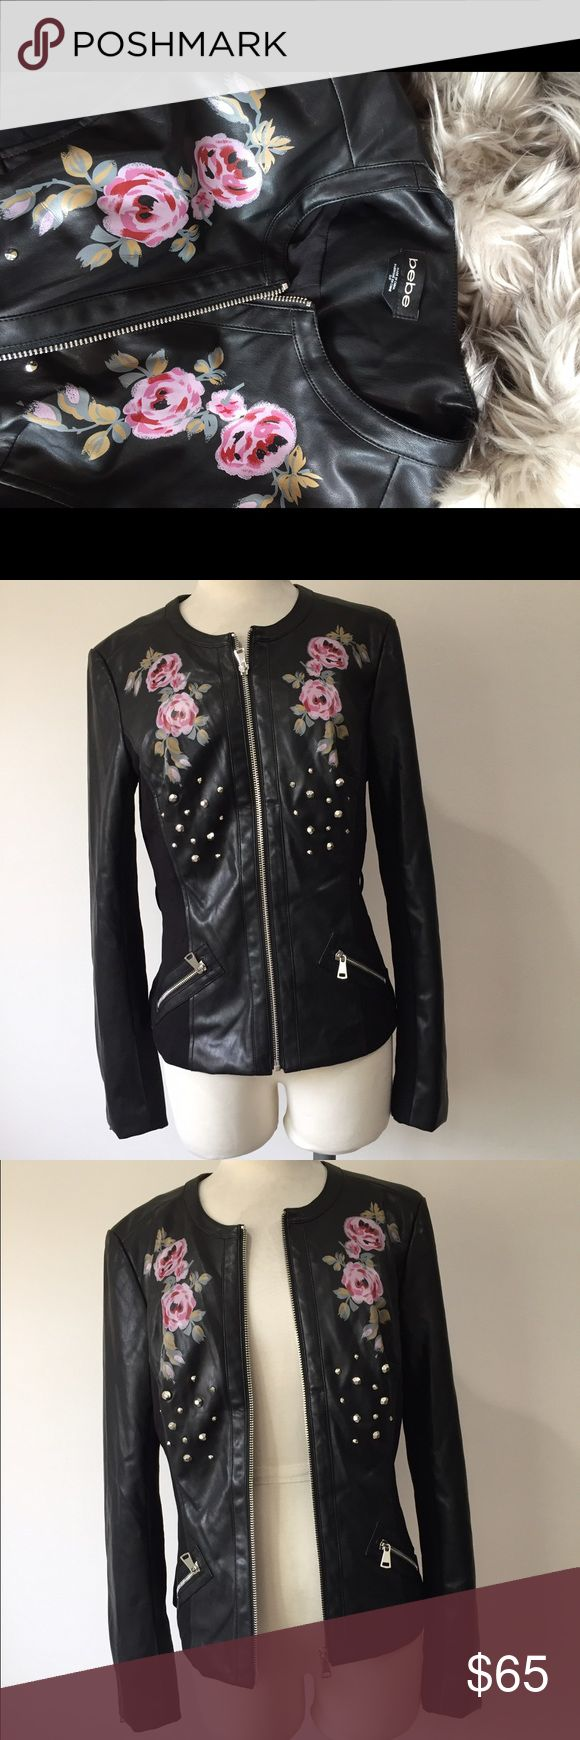 🌸Bebe vegan leather floral bomber jacket 🌸 Floral embroidery is one of the biggest fashion trends this year. Here is your chance to own this gorgeous painted floral bomber for a fraction of the price. This jacket also includes a matching belt. 🌺🌸🌷😍 bebe Jackets & Coats